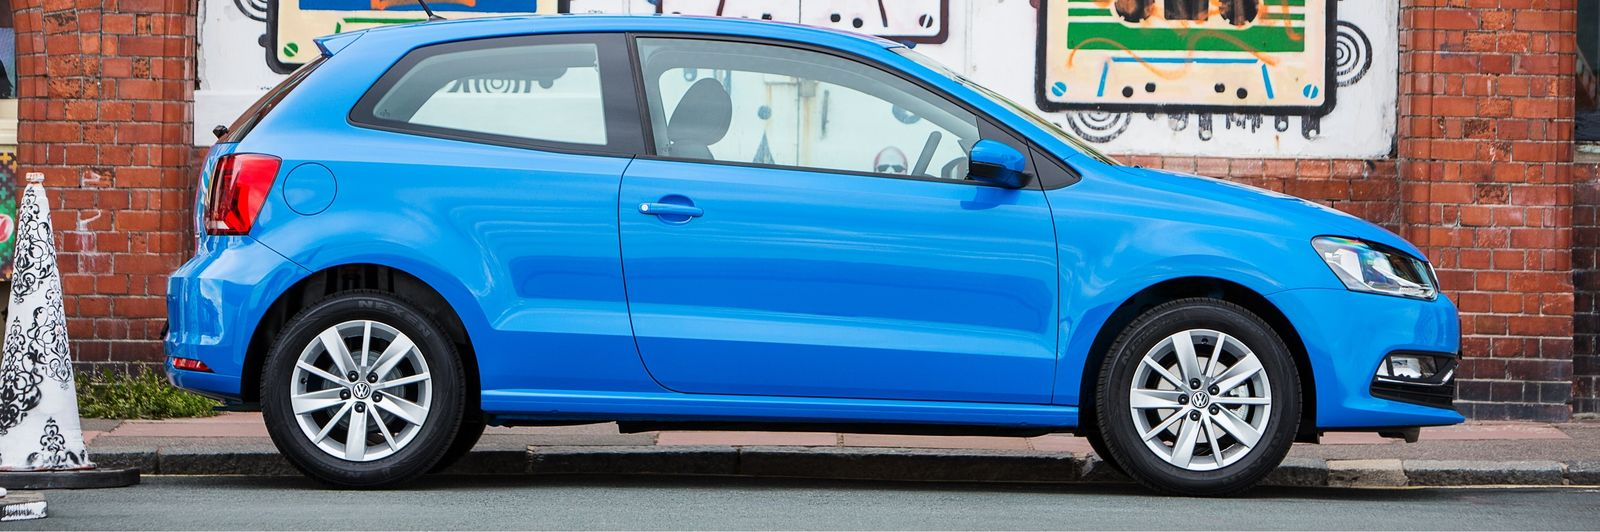 Pearl blue car paint colors - Car Paint Types Explained